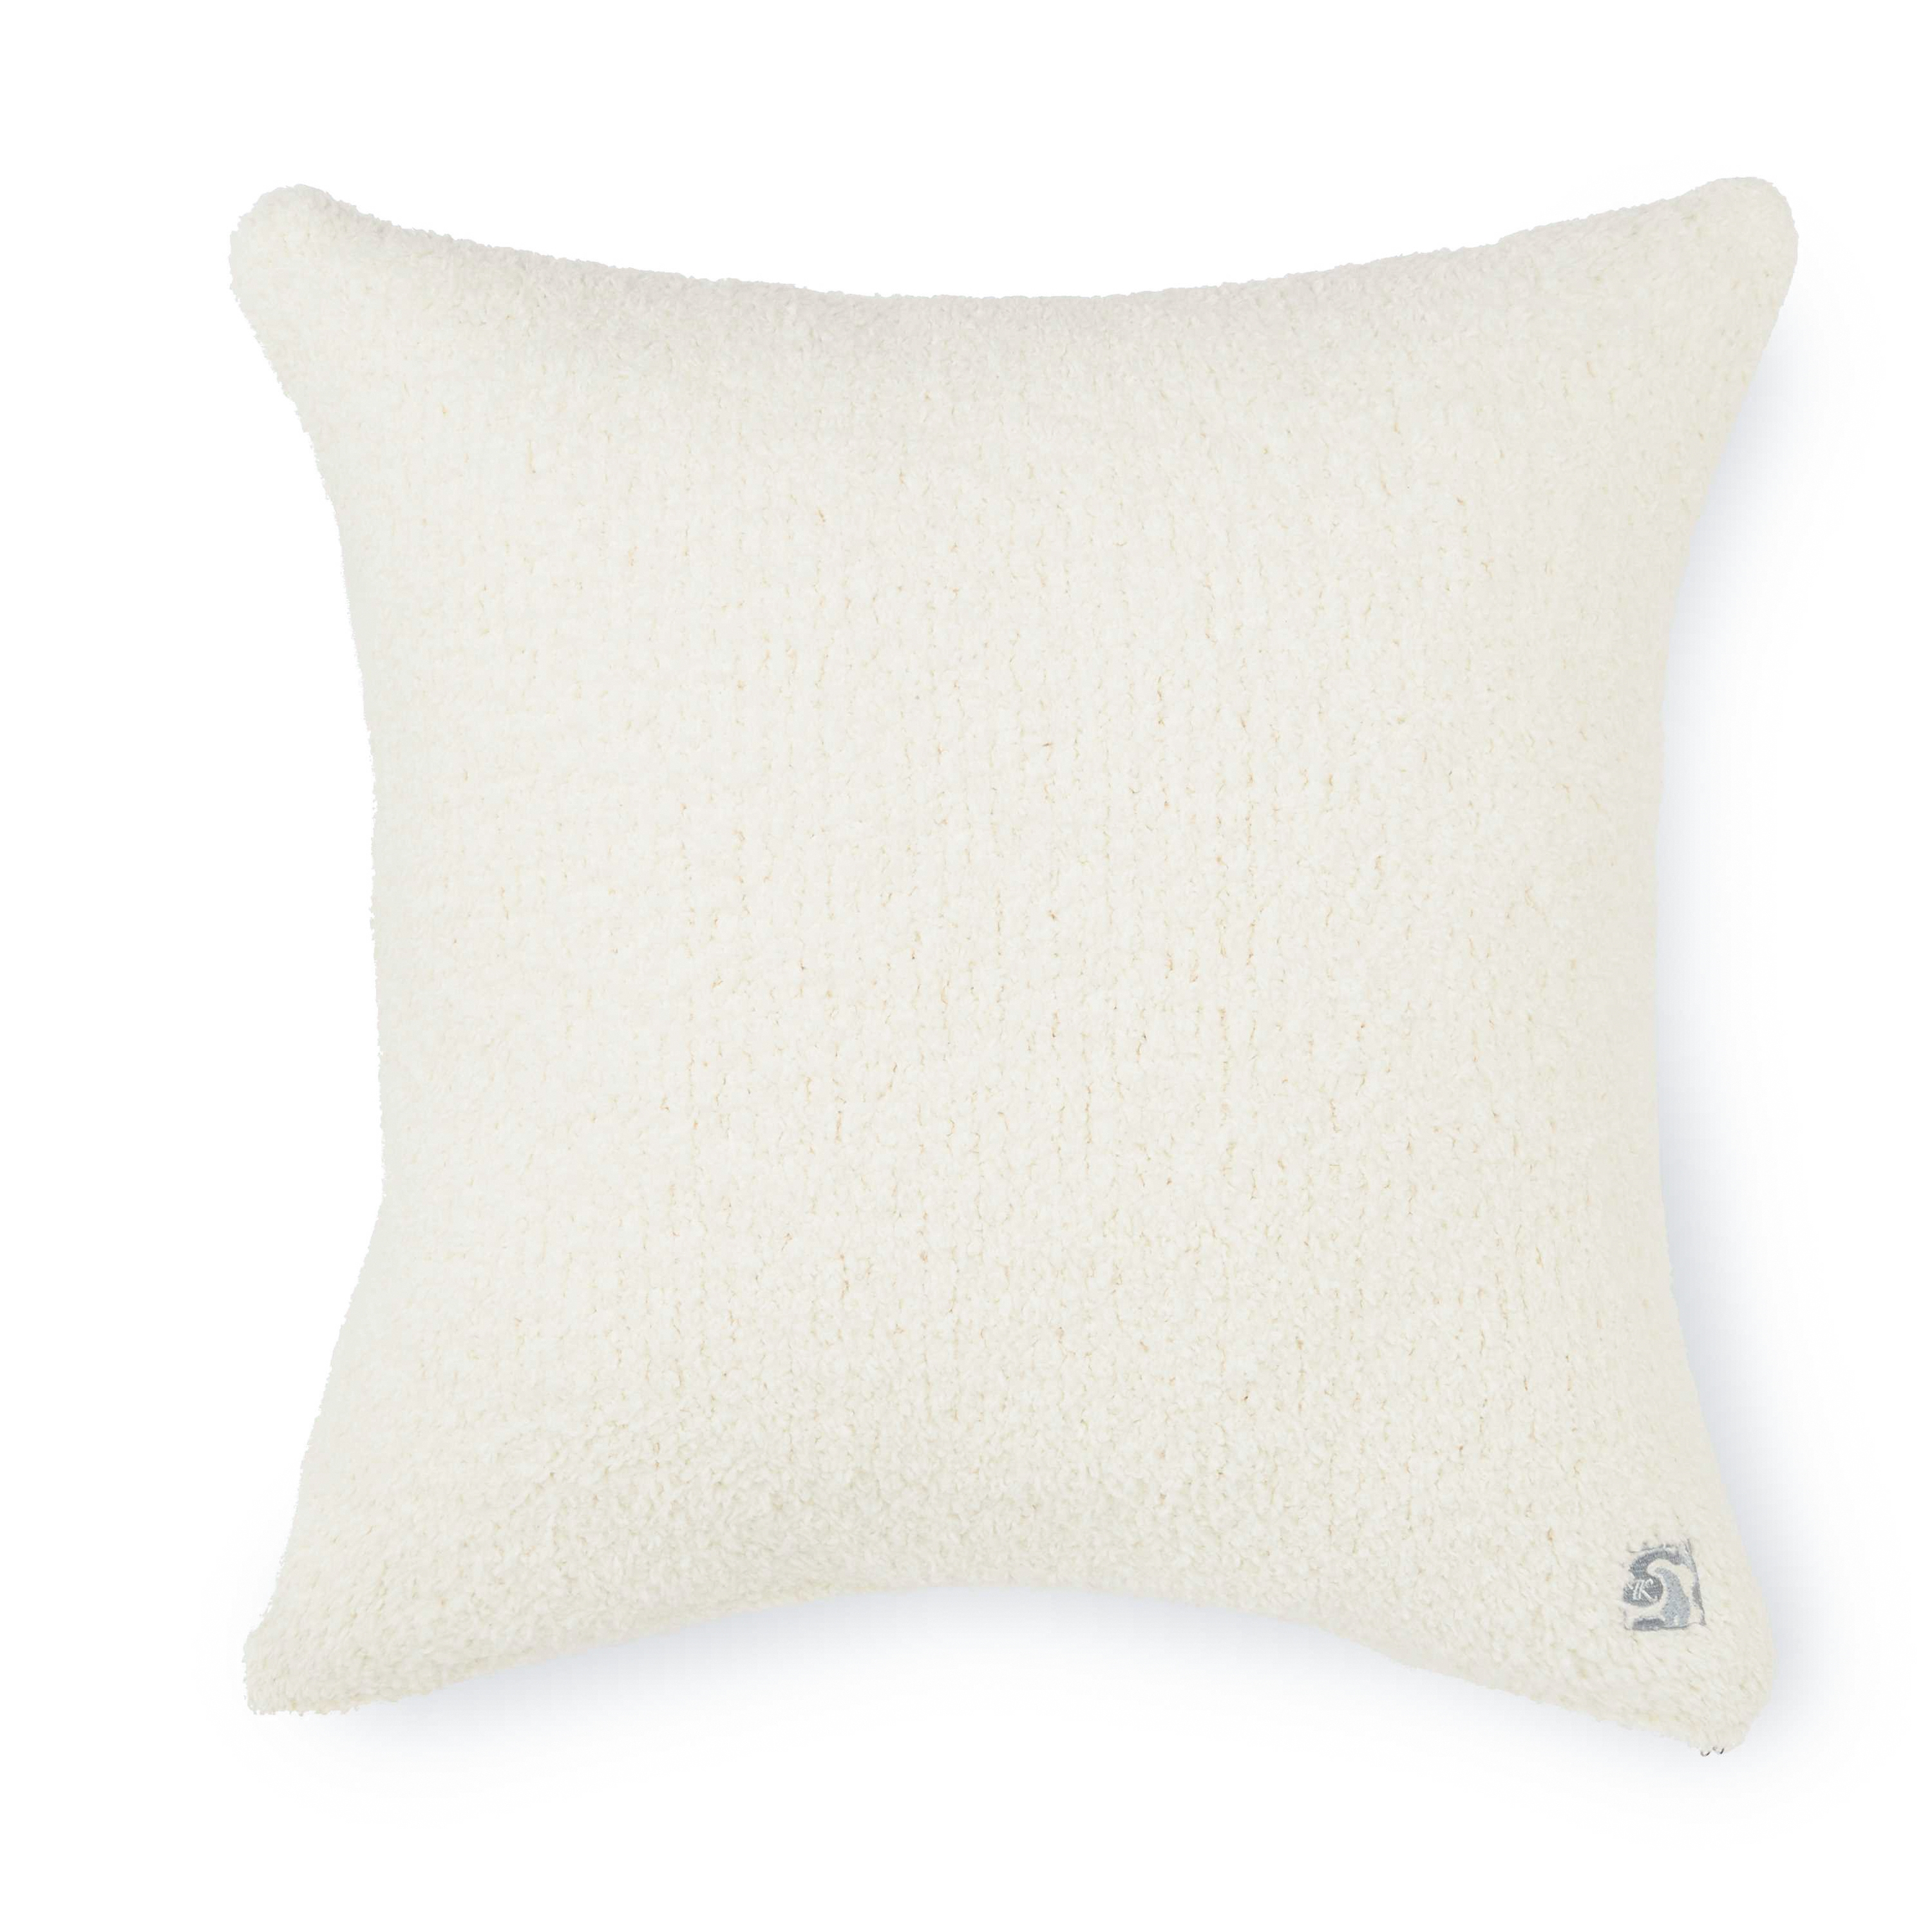 CUSHION COVER/SOLID